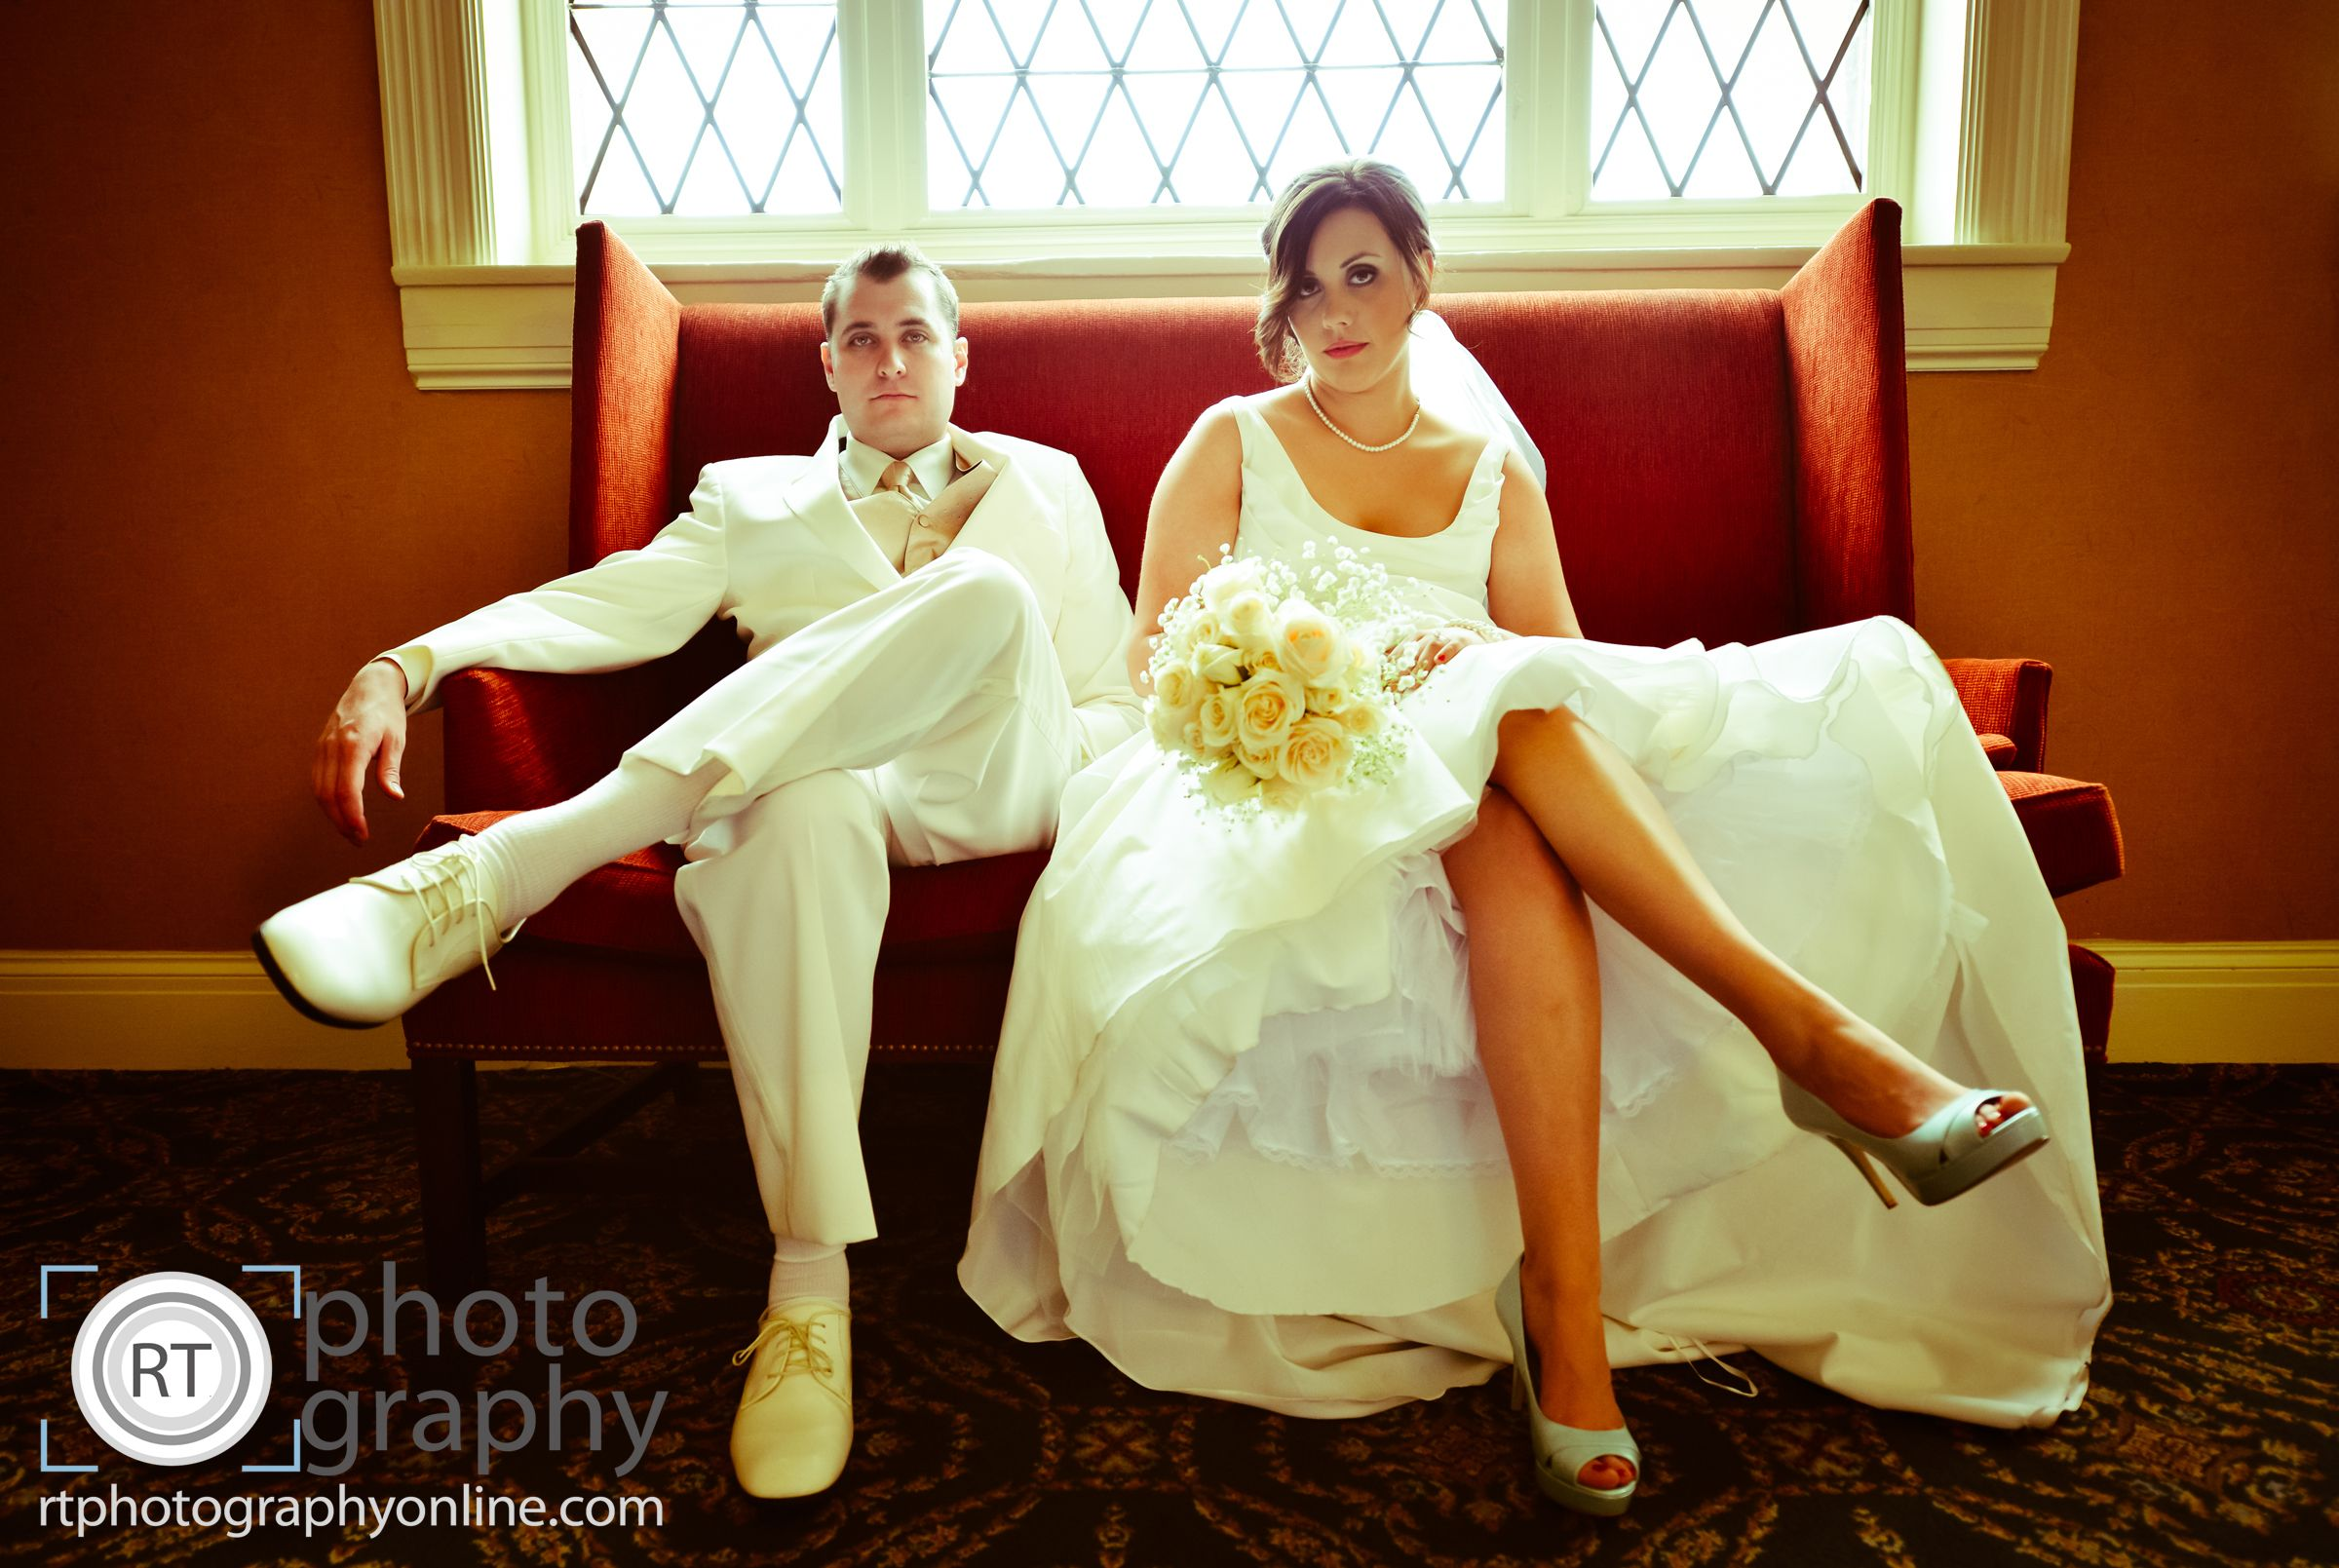 R.T. Photography - The Seelbach Hotel - Louisville Ky